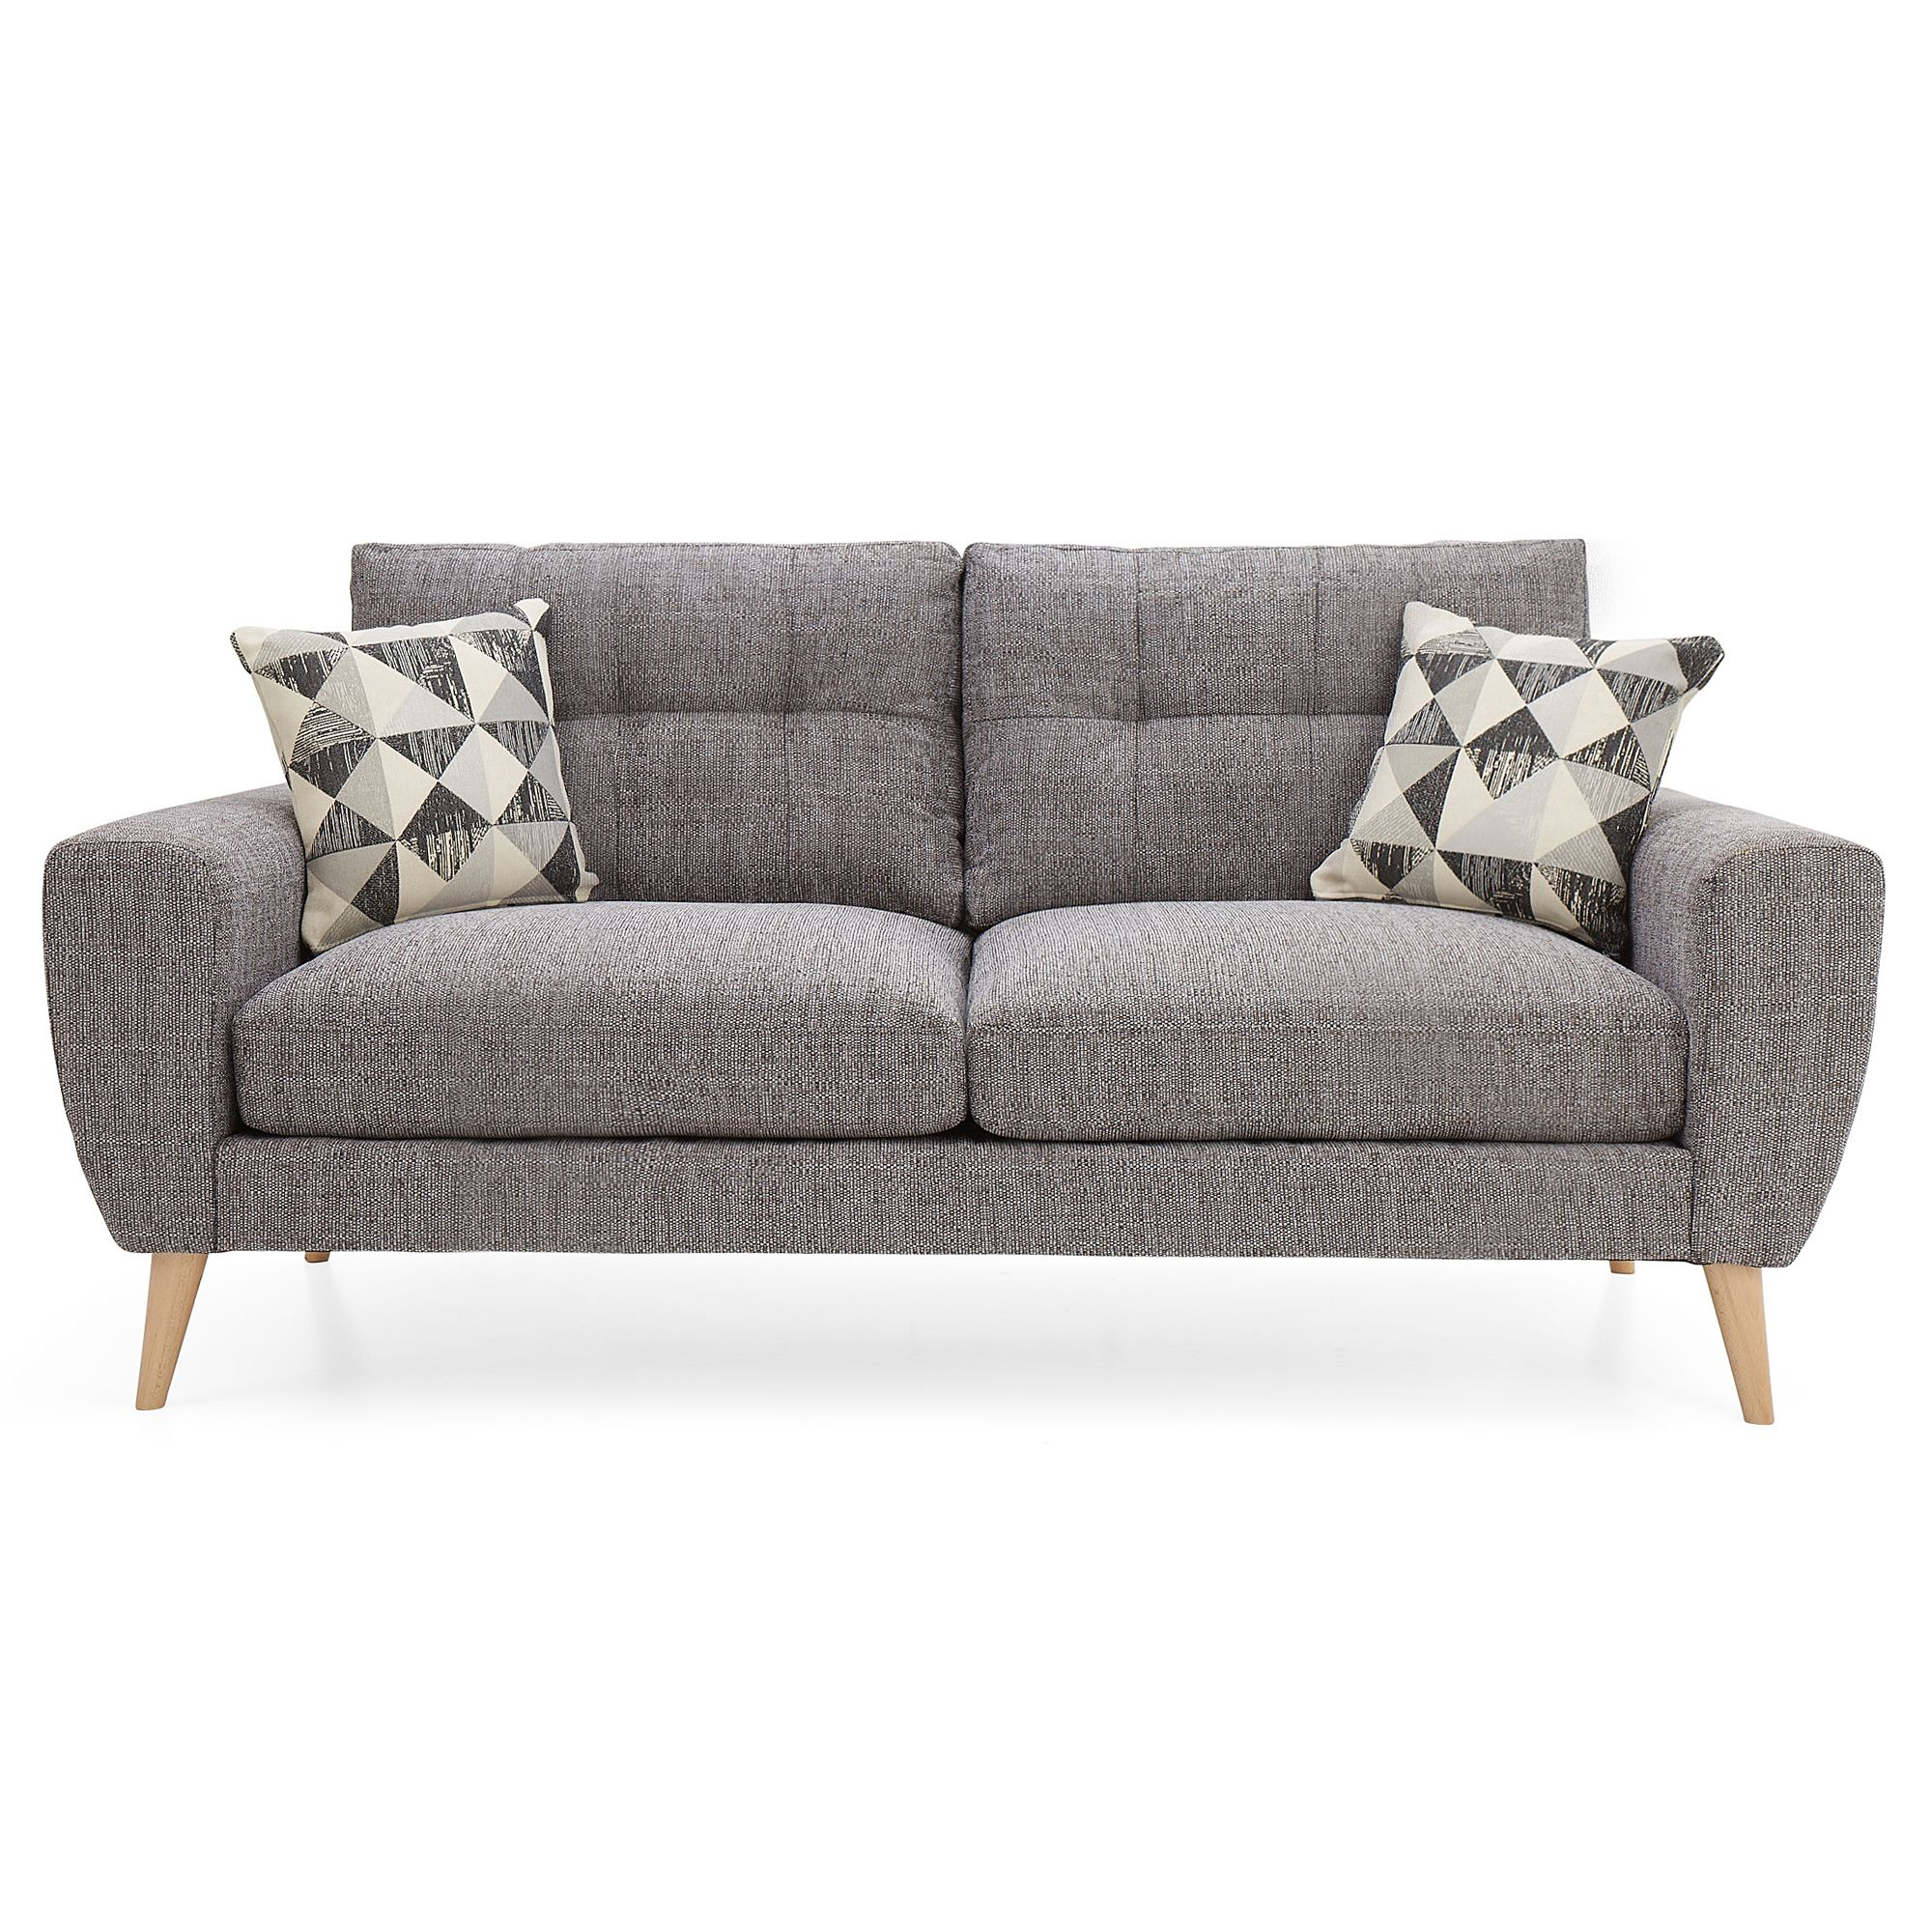 Seater Sofa Next Day Delivery